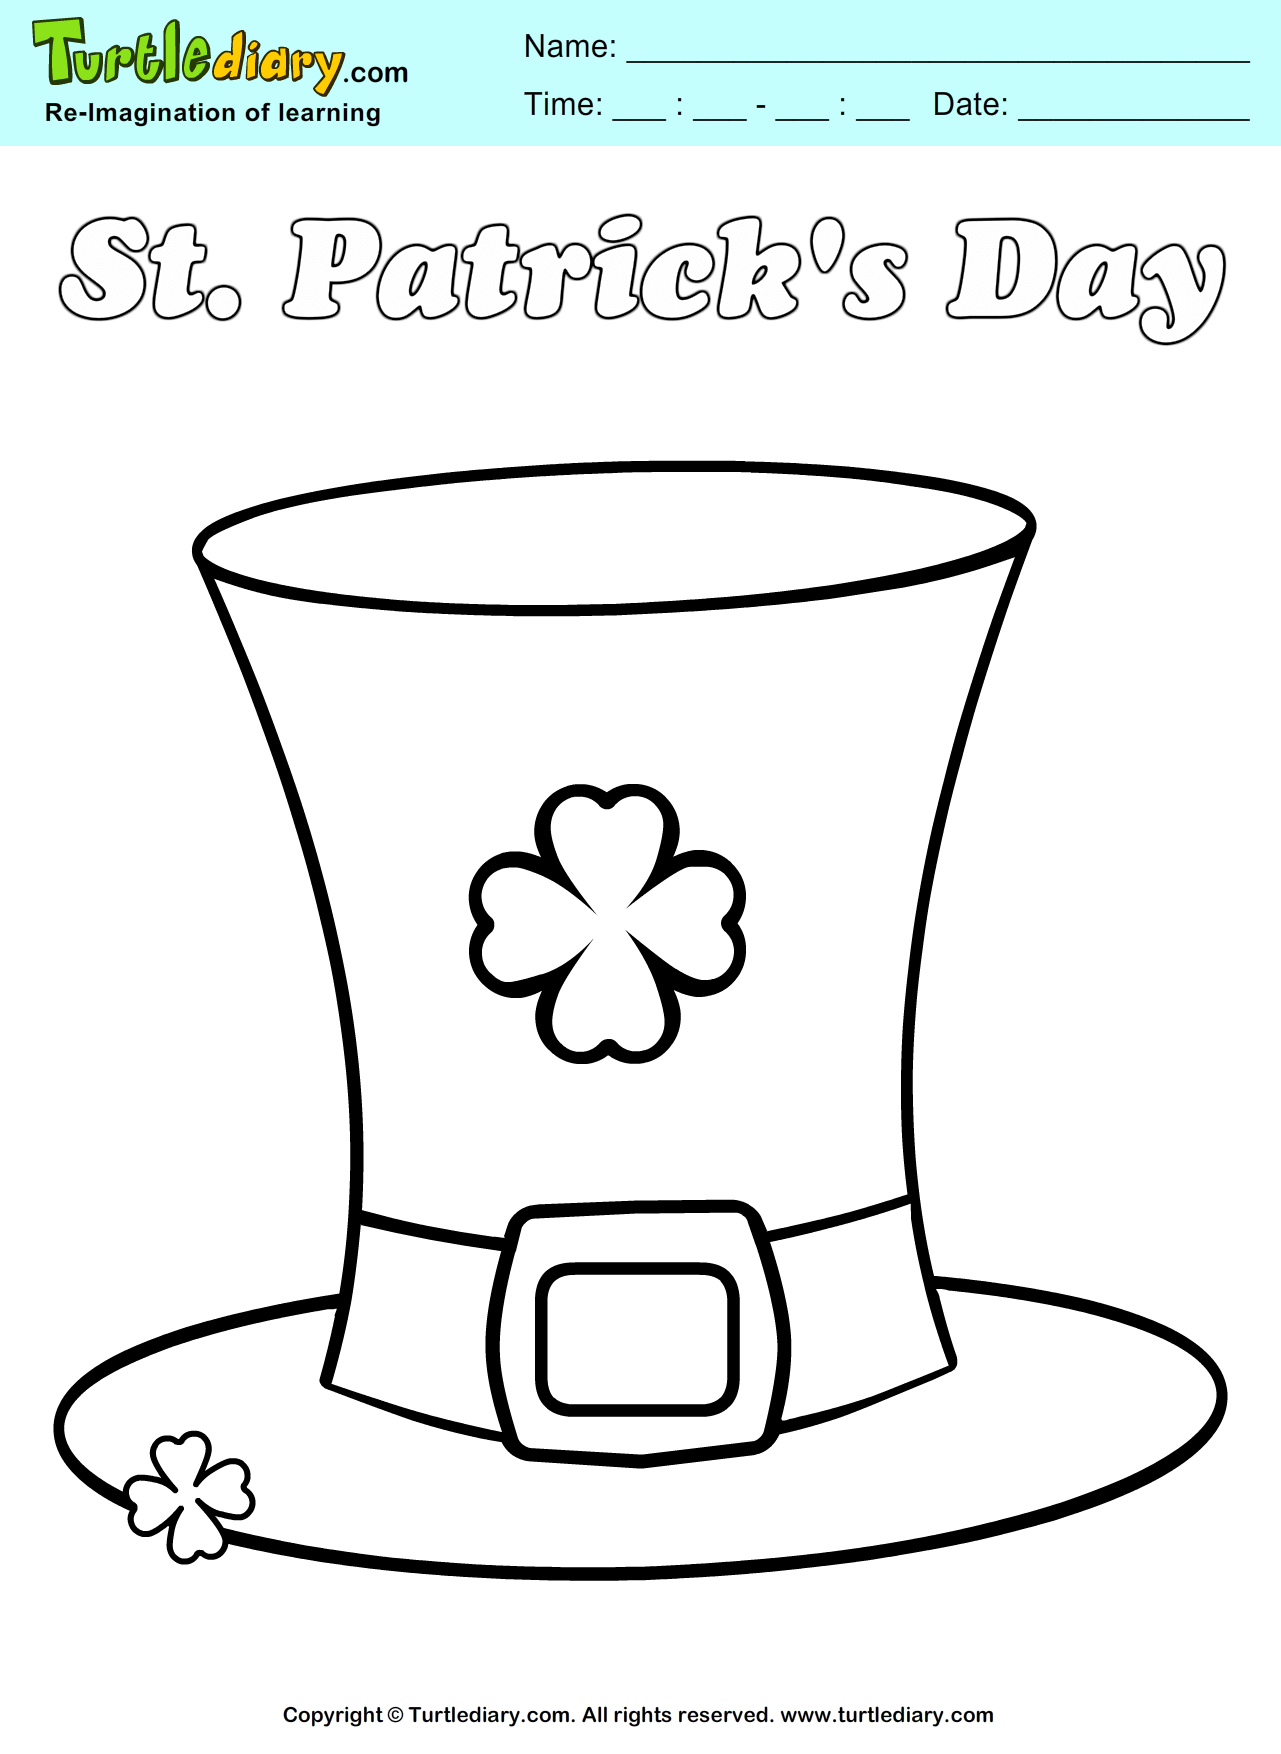 St patrick 39 s hat coloring sheet turtle diary for Leprechaun hat coloring page